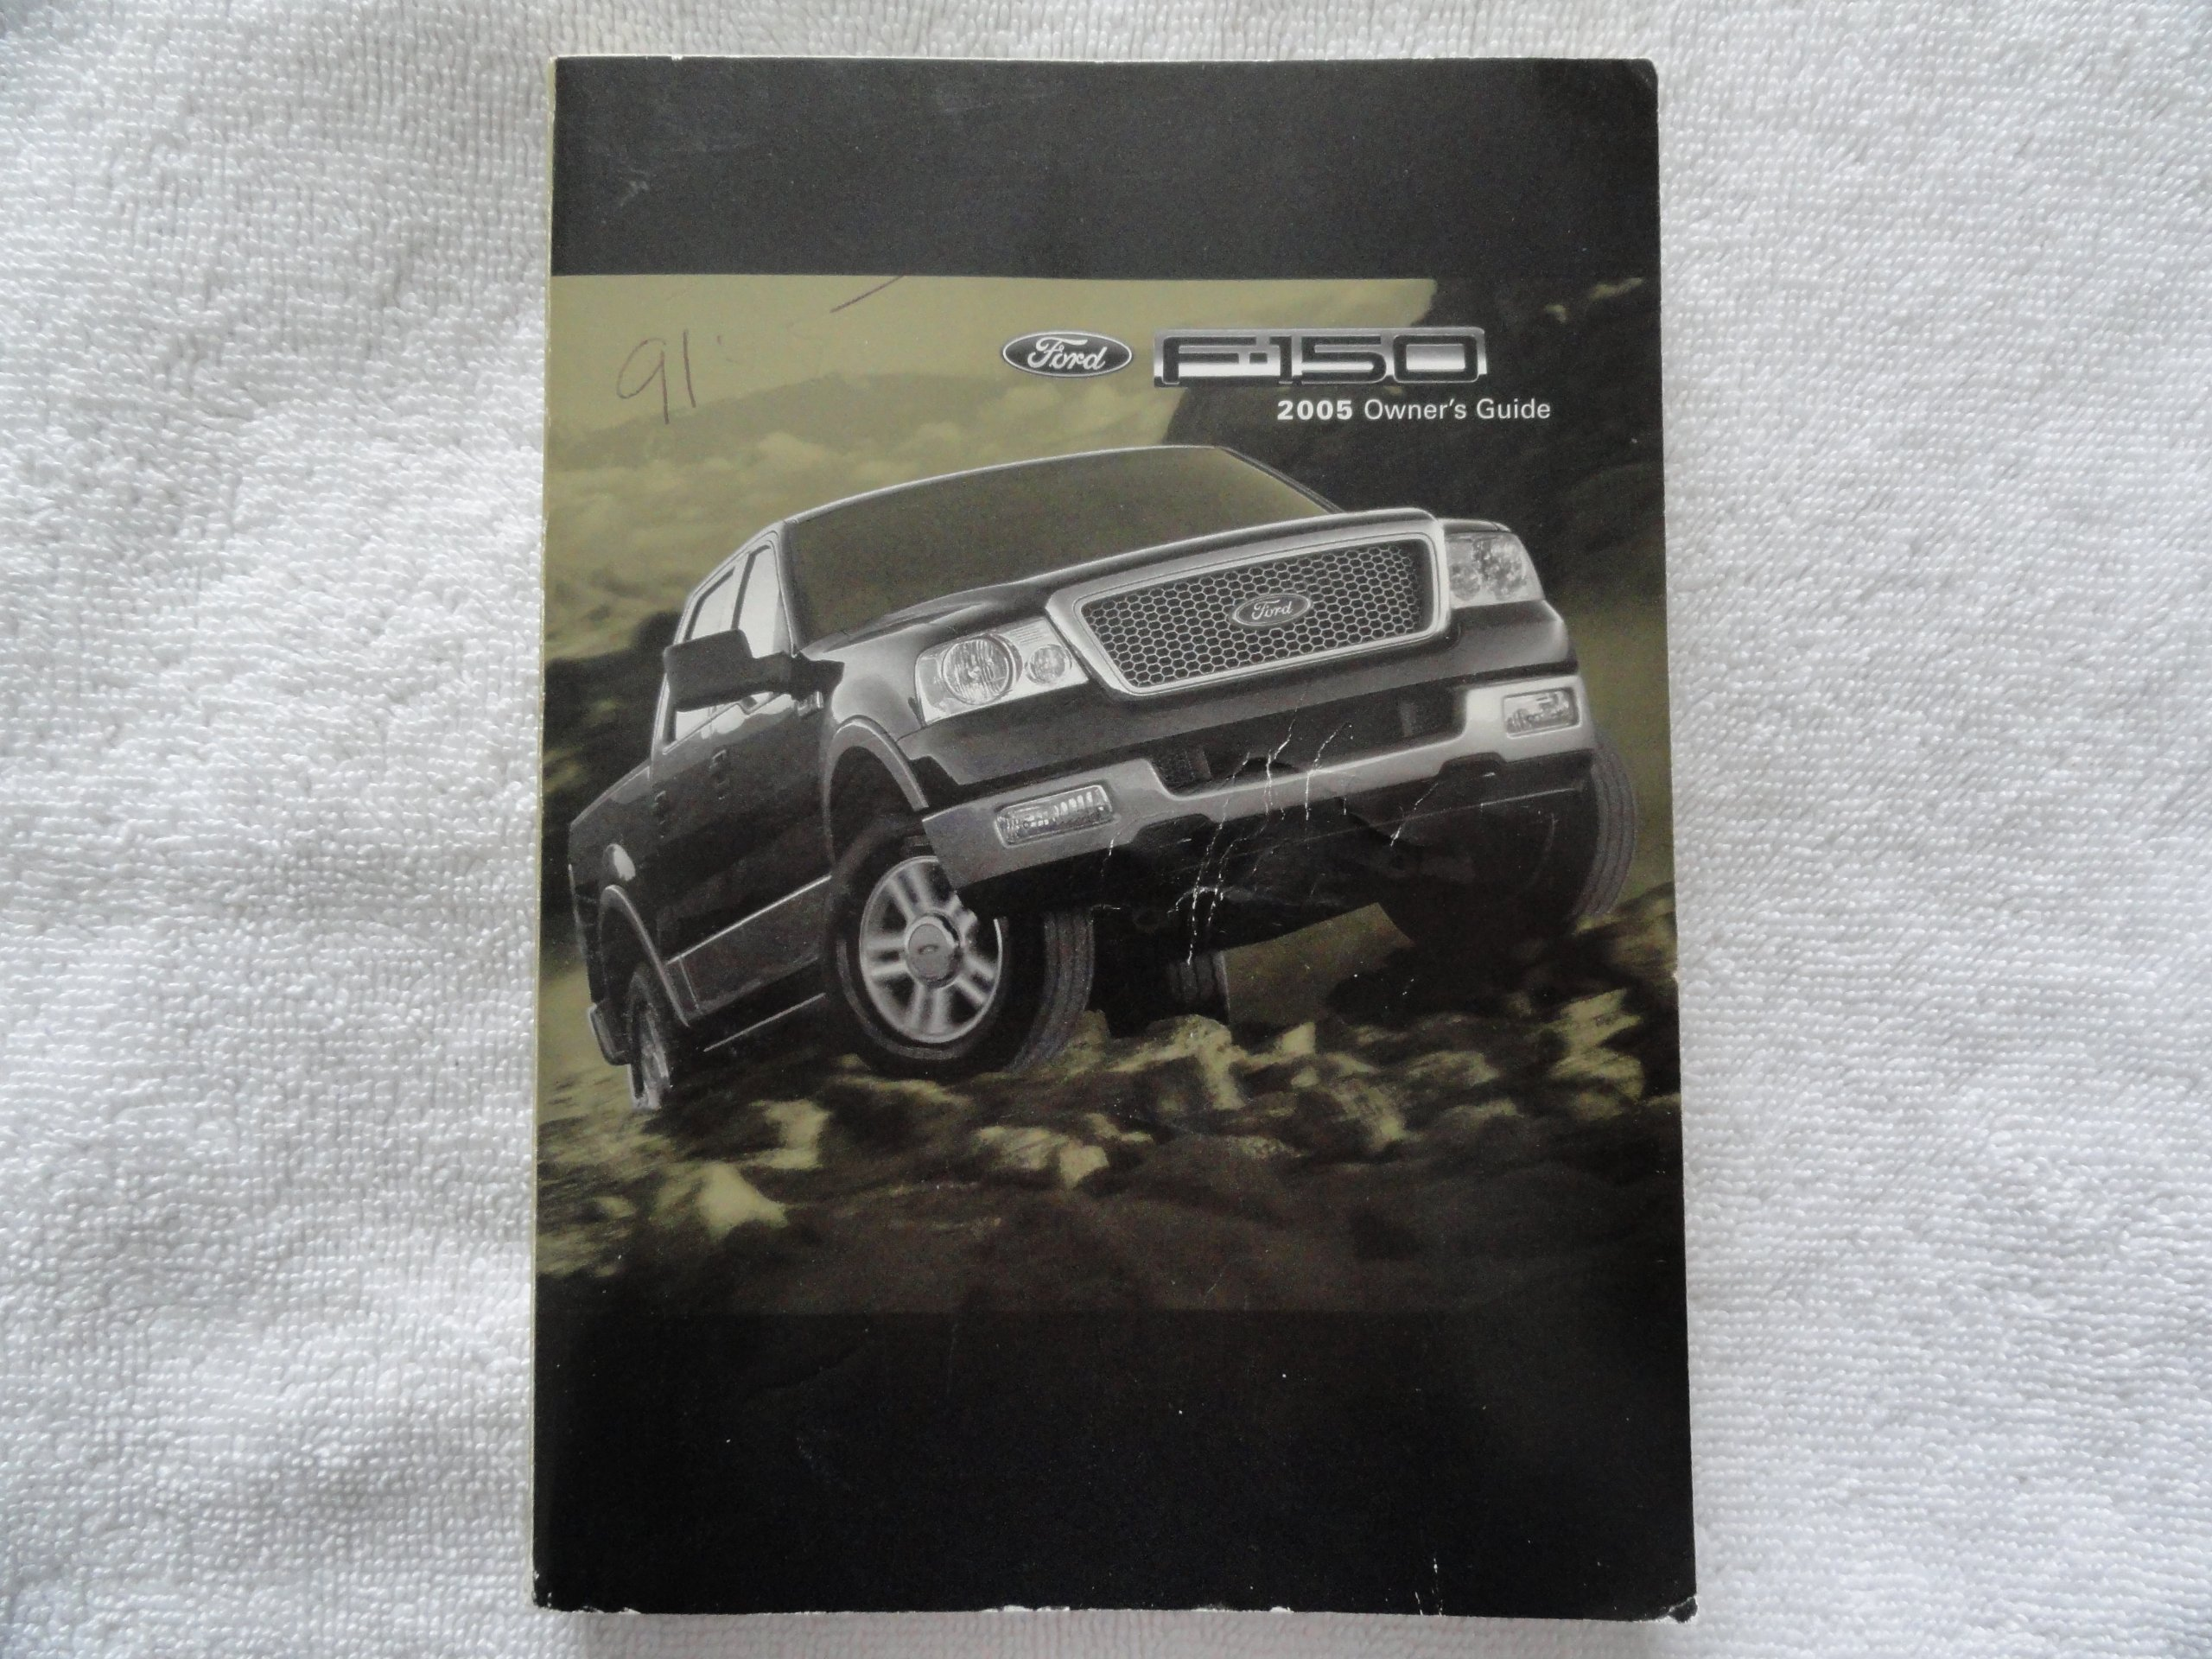 2005 ford f150 owners manual ford amazon com books 2005 Mazda 3 Fuse Box Diagram 2005 ford f150 owners manual paperback \u2013 2005